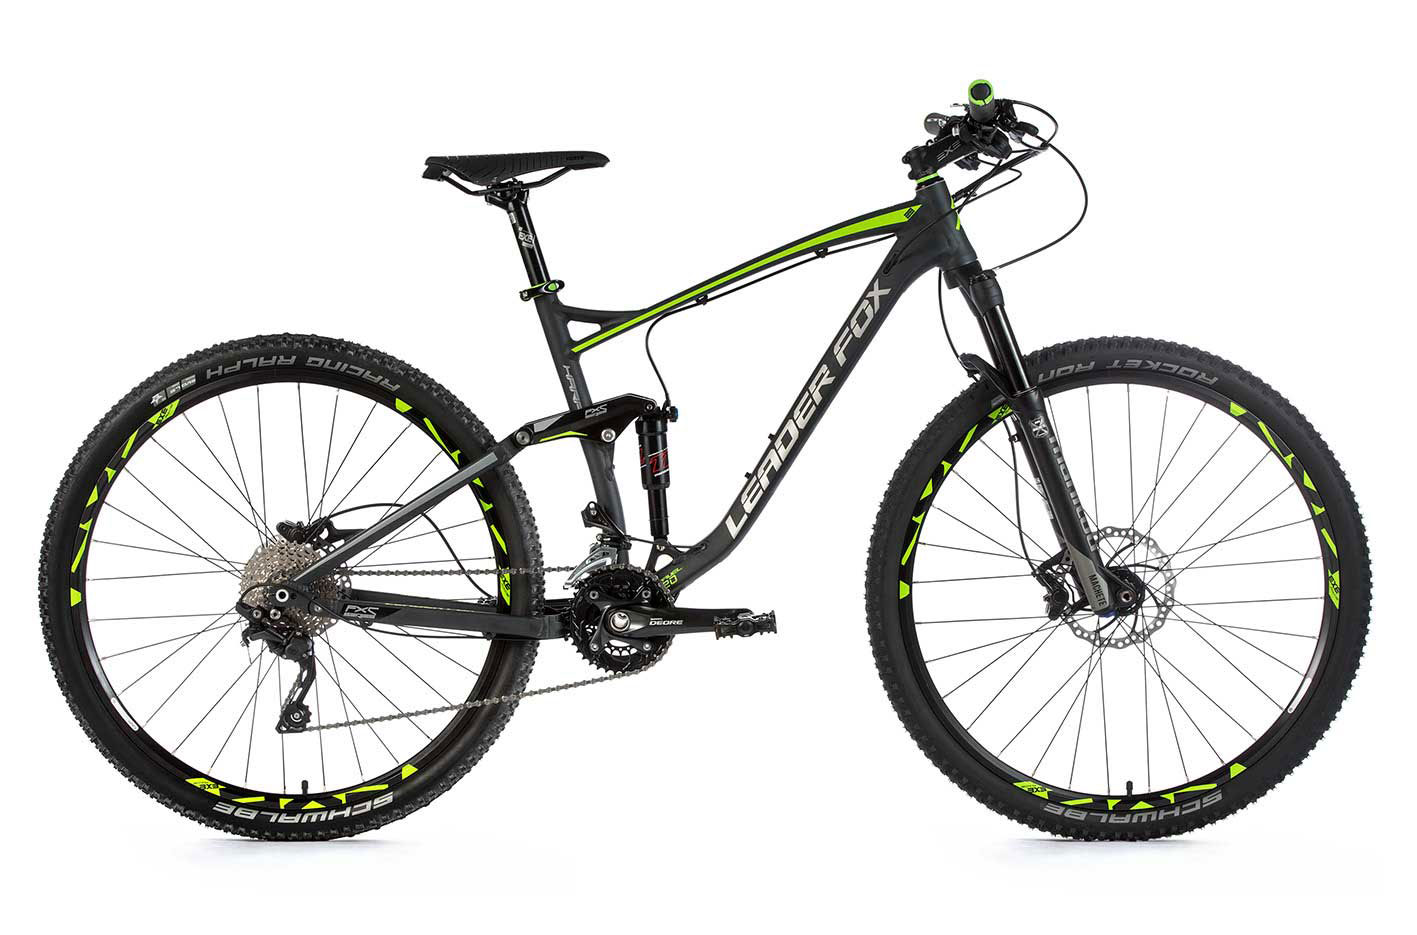 Bicicleta MTB 29 inch full suspension Leader Fox Harper